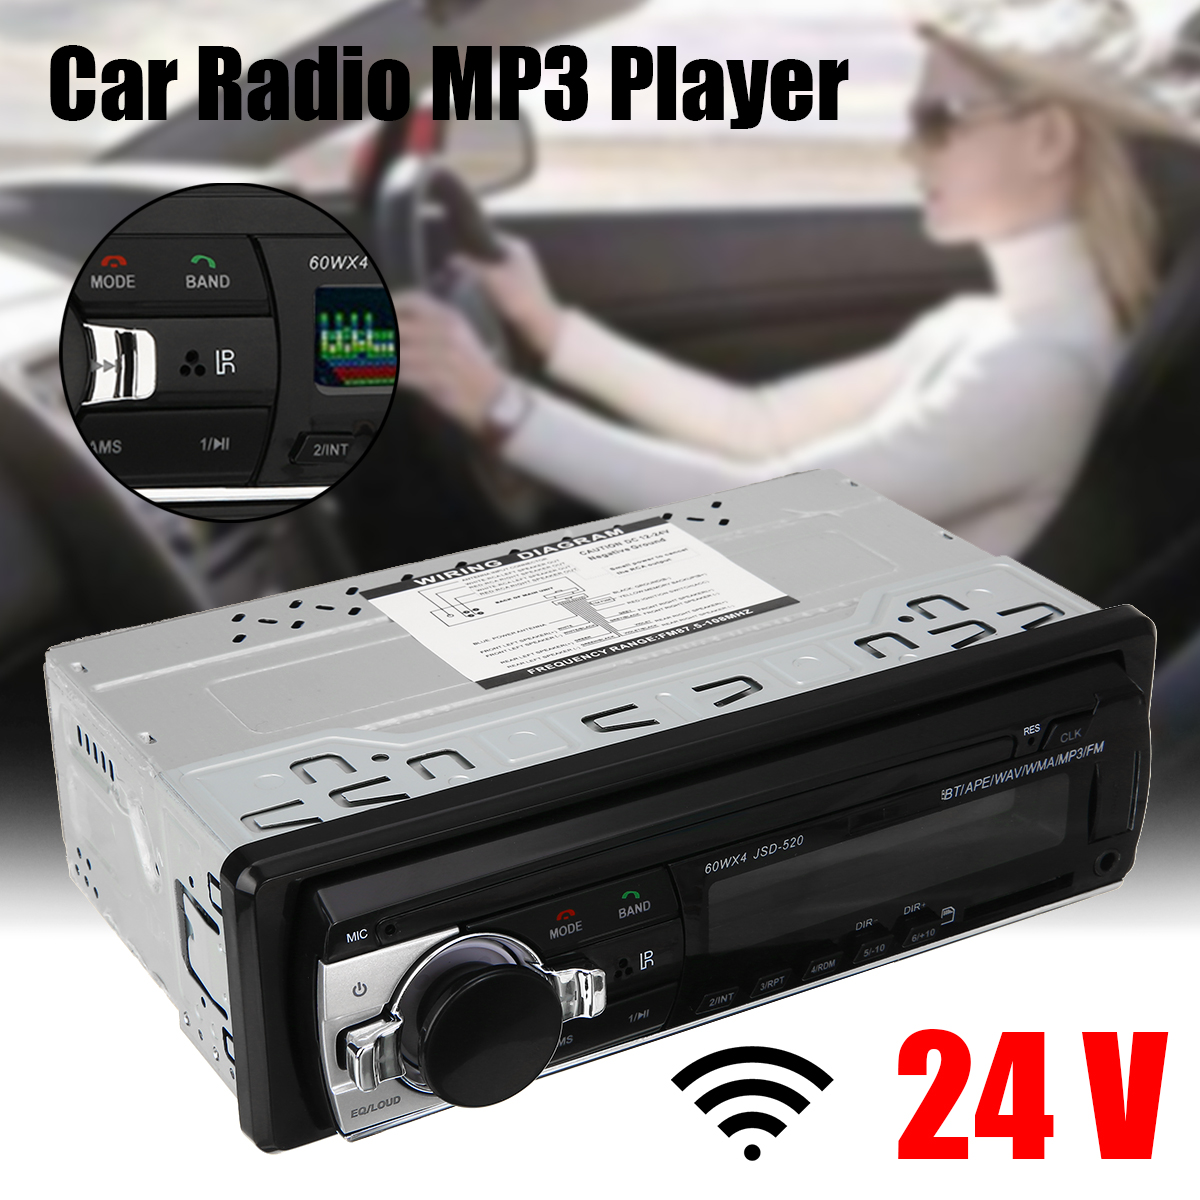 JSD-520 24V Car Radio Stereo Player Digital Bluetooth Car MP3 Player 60Wx4 FM Radio Stereo Audio USB/SD with In Dash AUX Input image